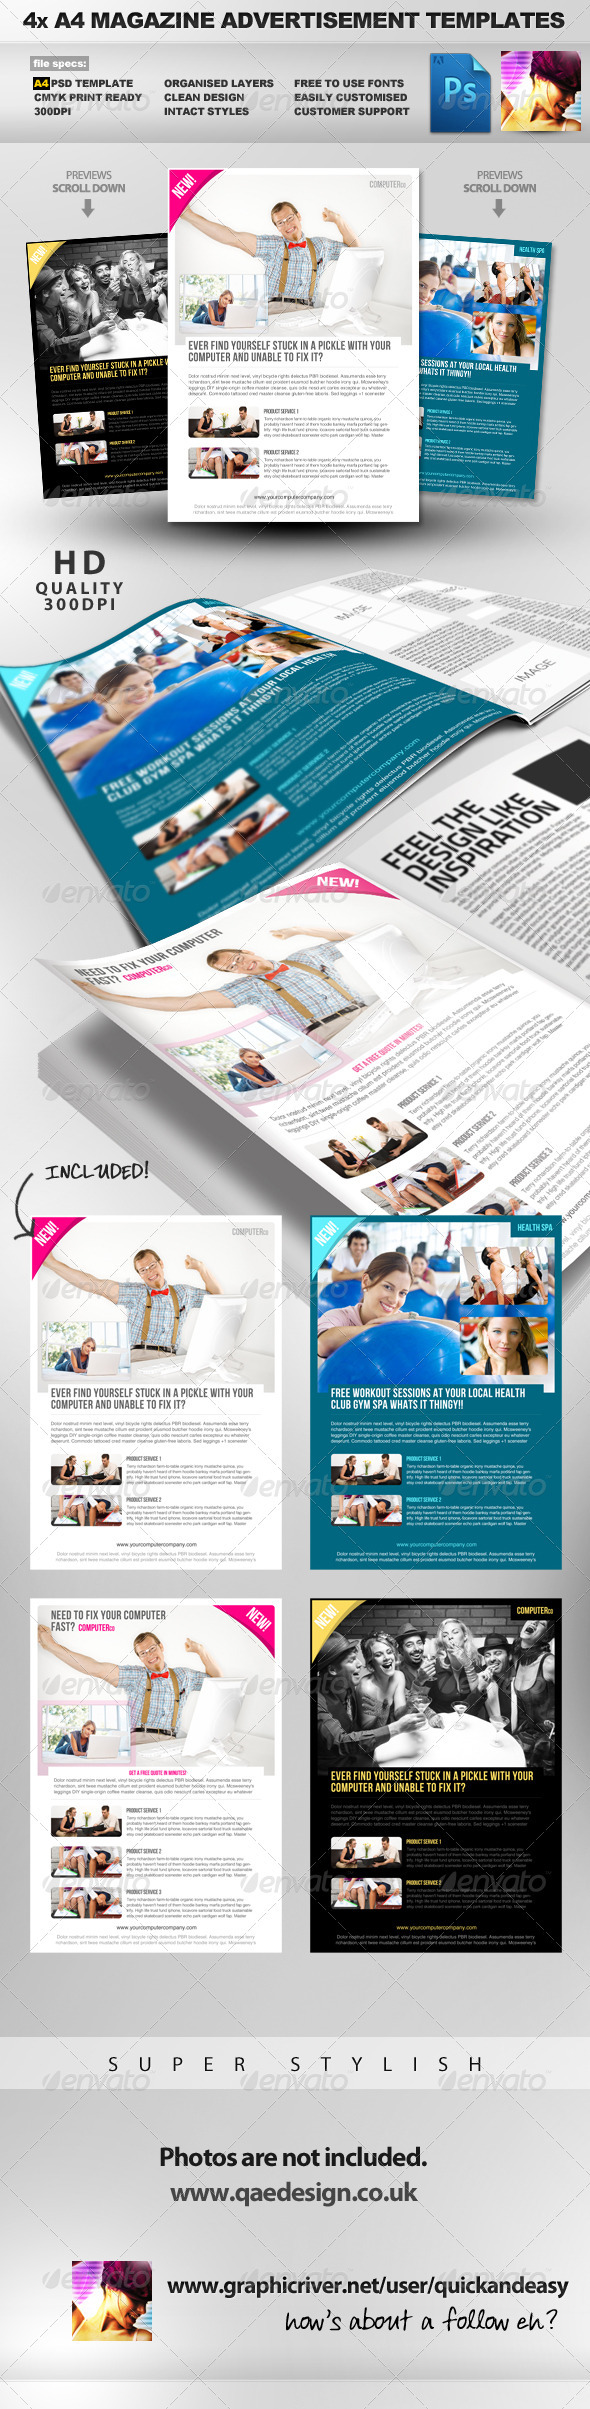 Magazine Ad Design Template image information